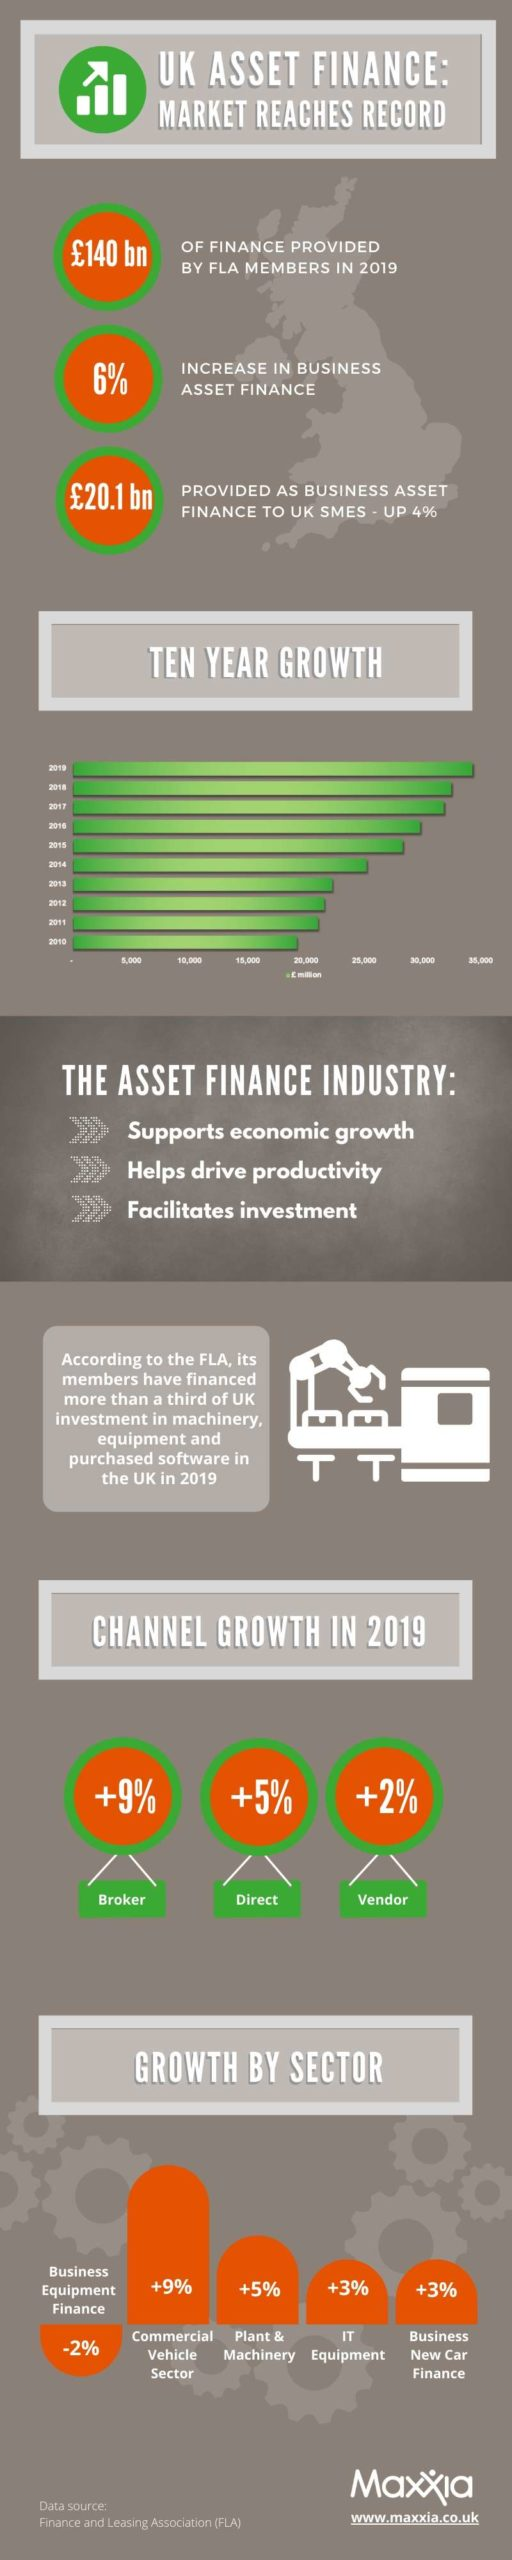 UK Asset Finance Market Growth Statistics 2019